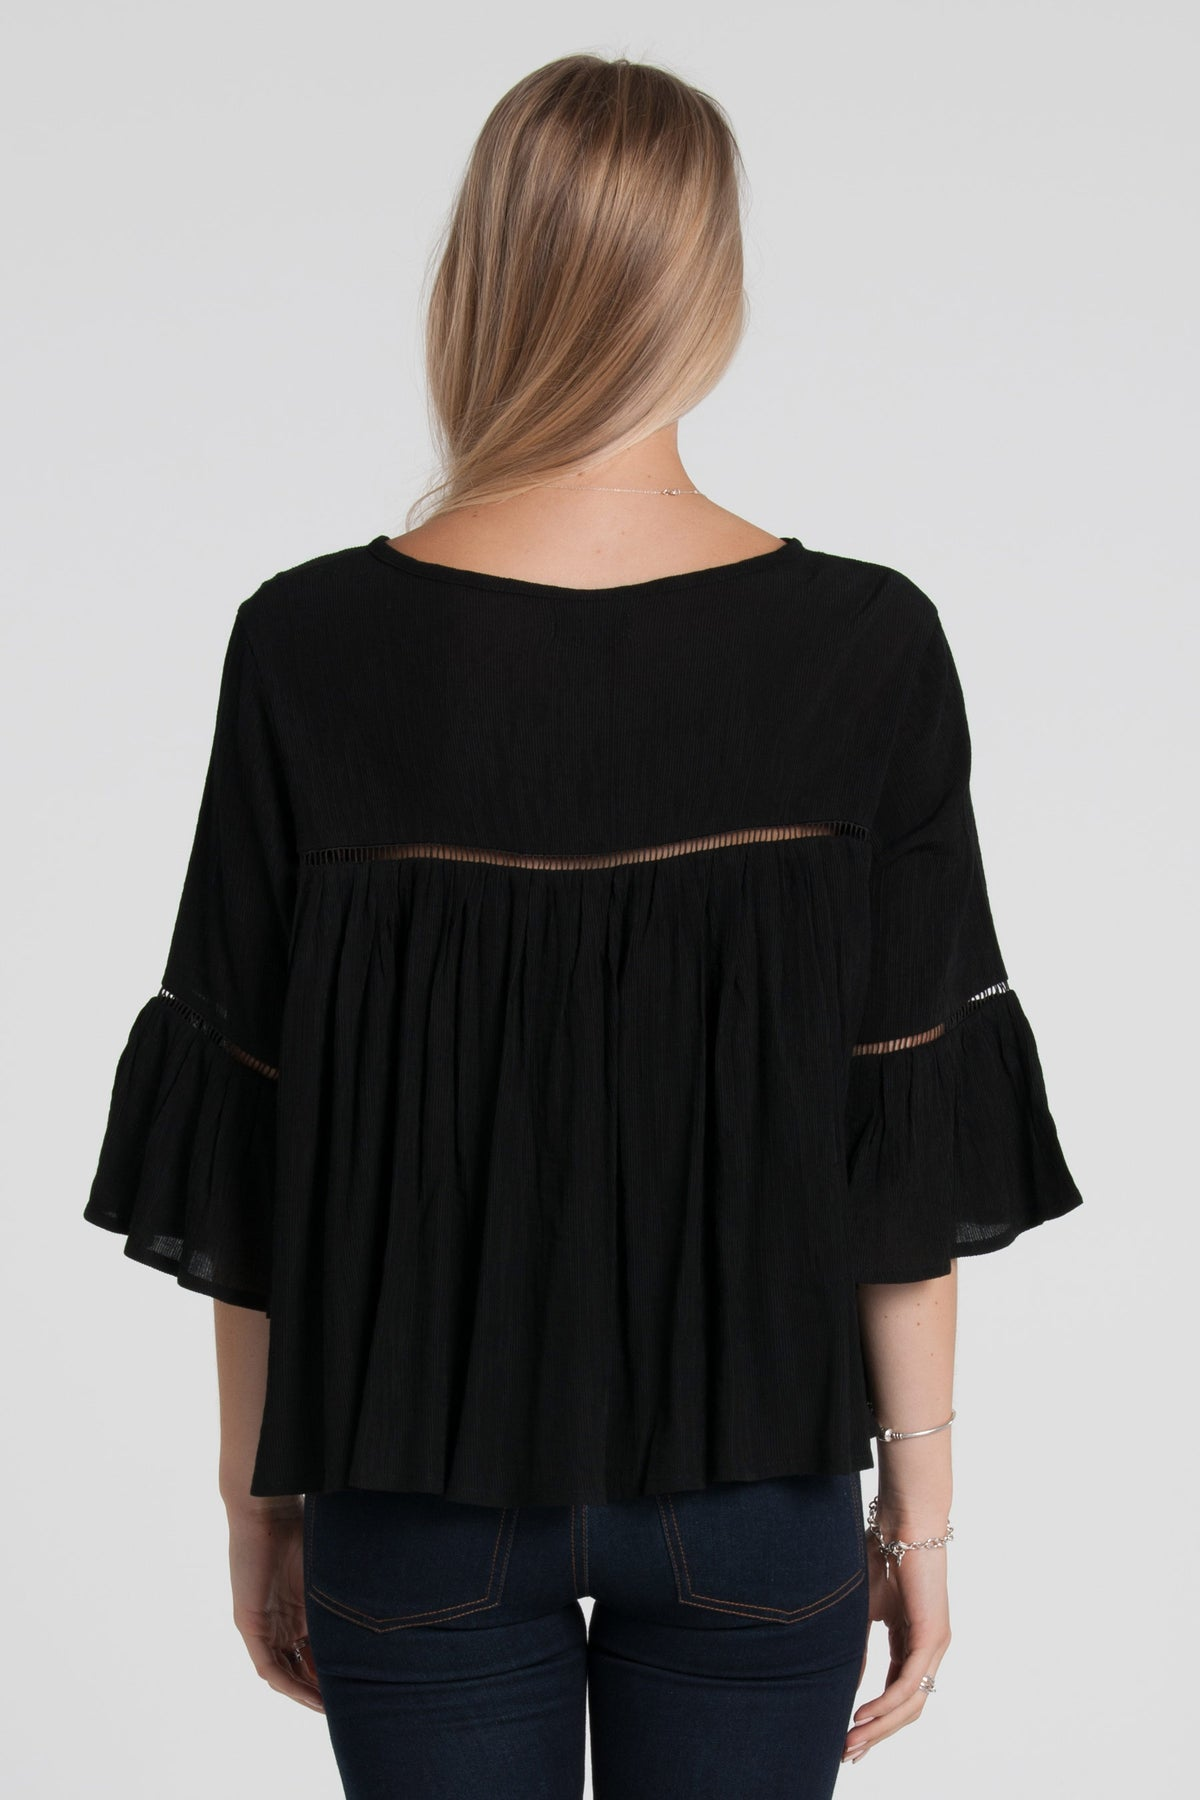 Clementine Top - Black